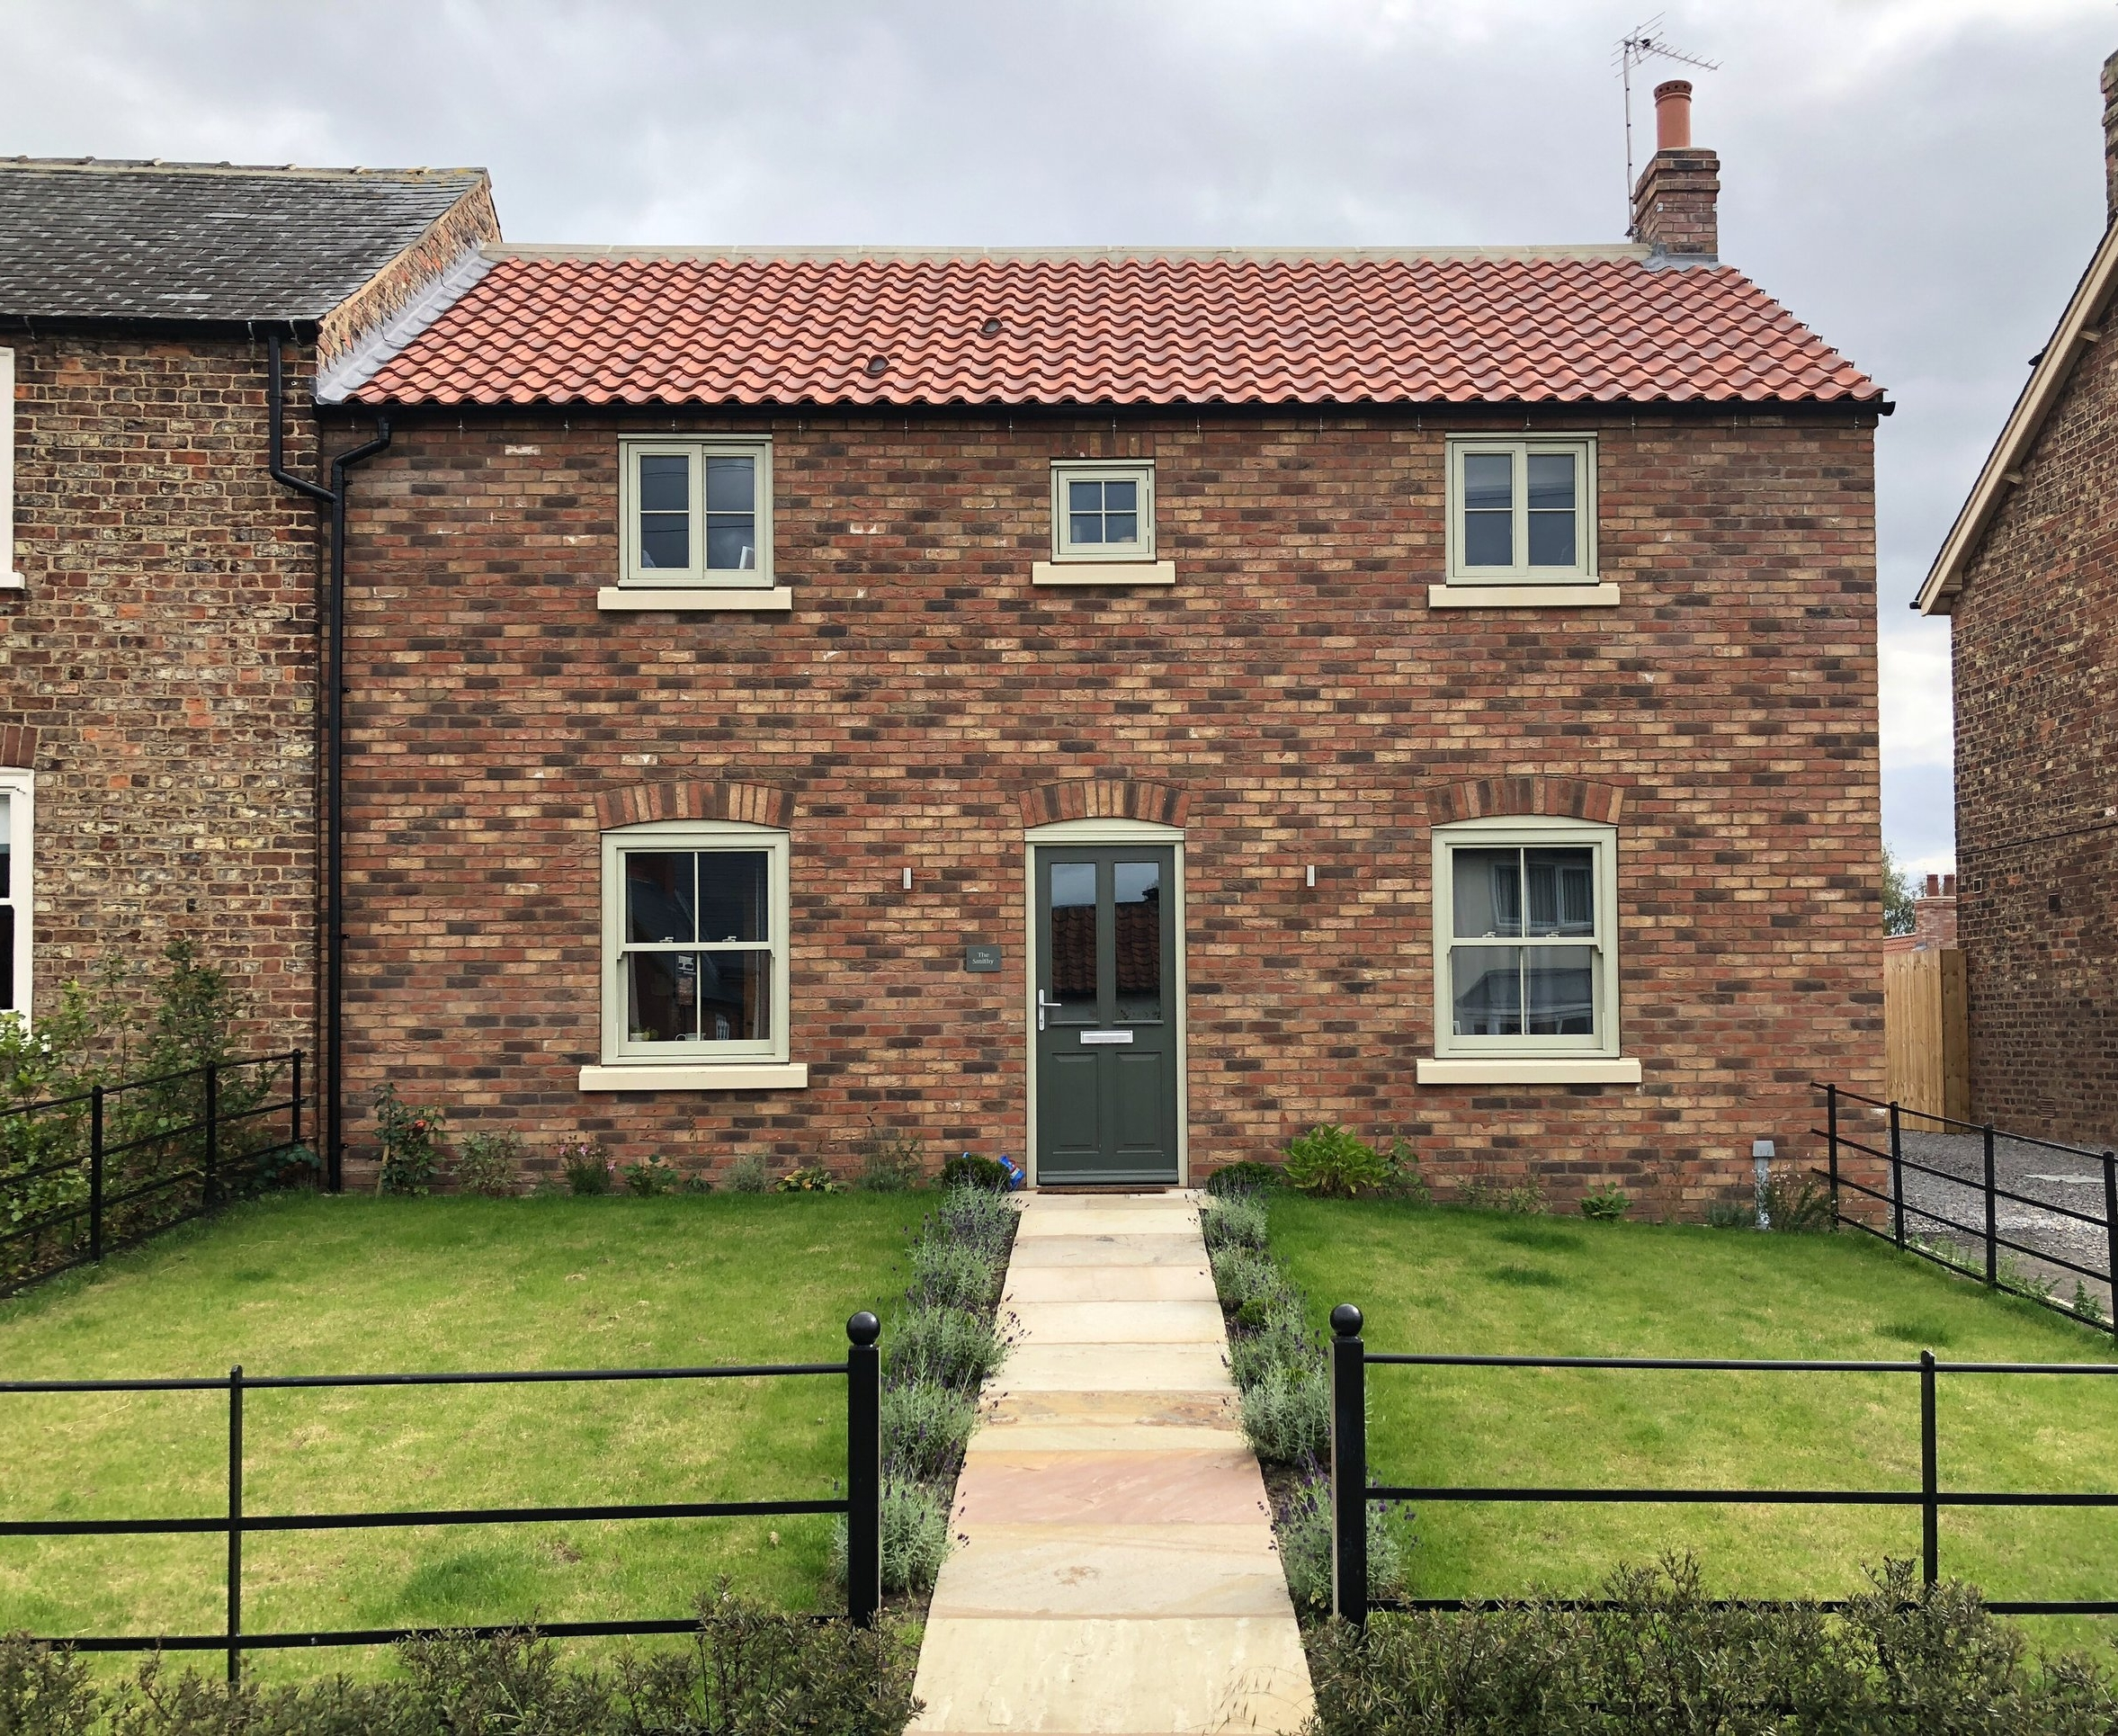 The Smithy - Plot 1 - SoldA charming 3 bedroom terraced property on the site of the original village forge.